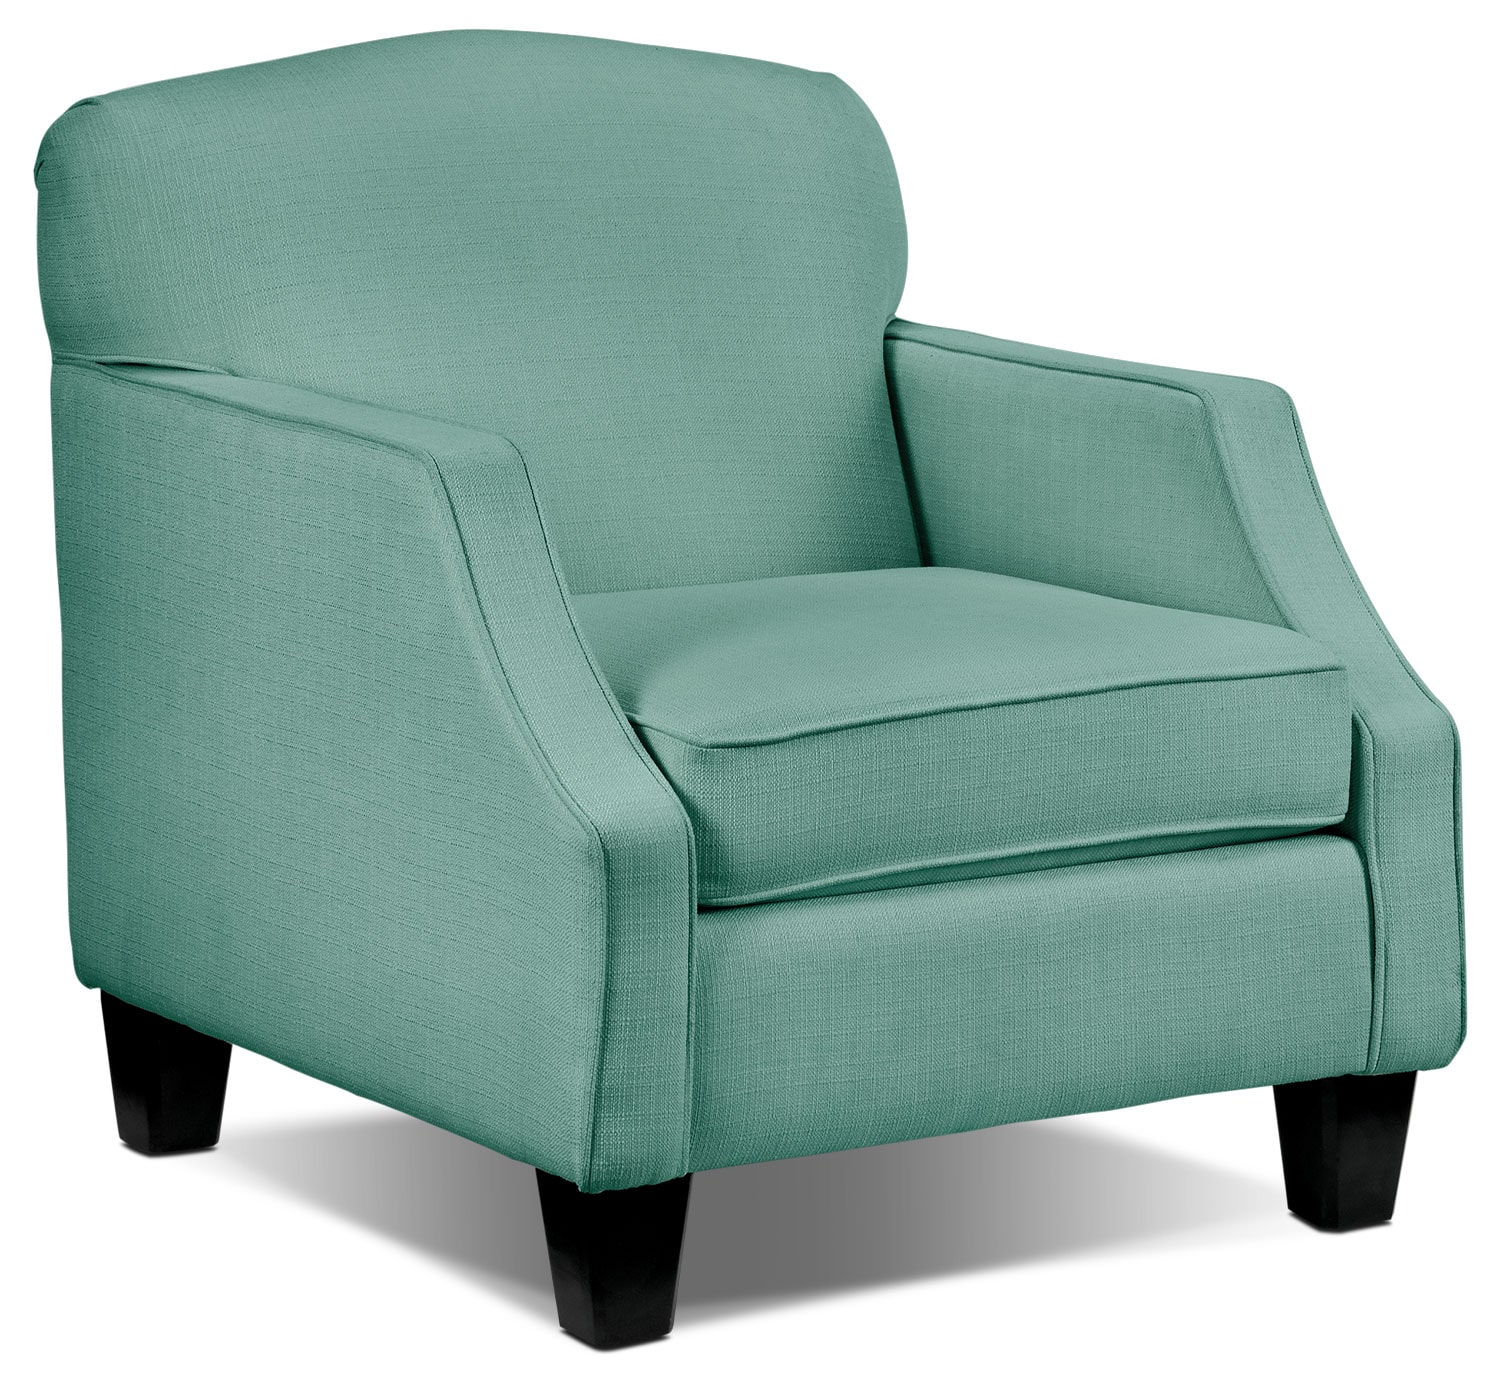 Living Room Furniture - Klein Chair - Laguna